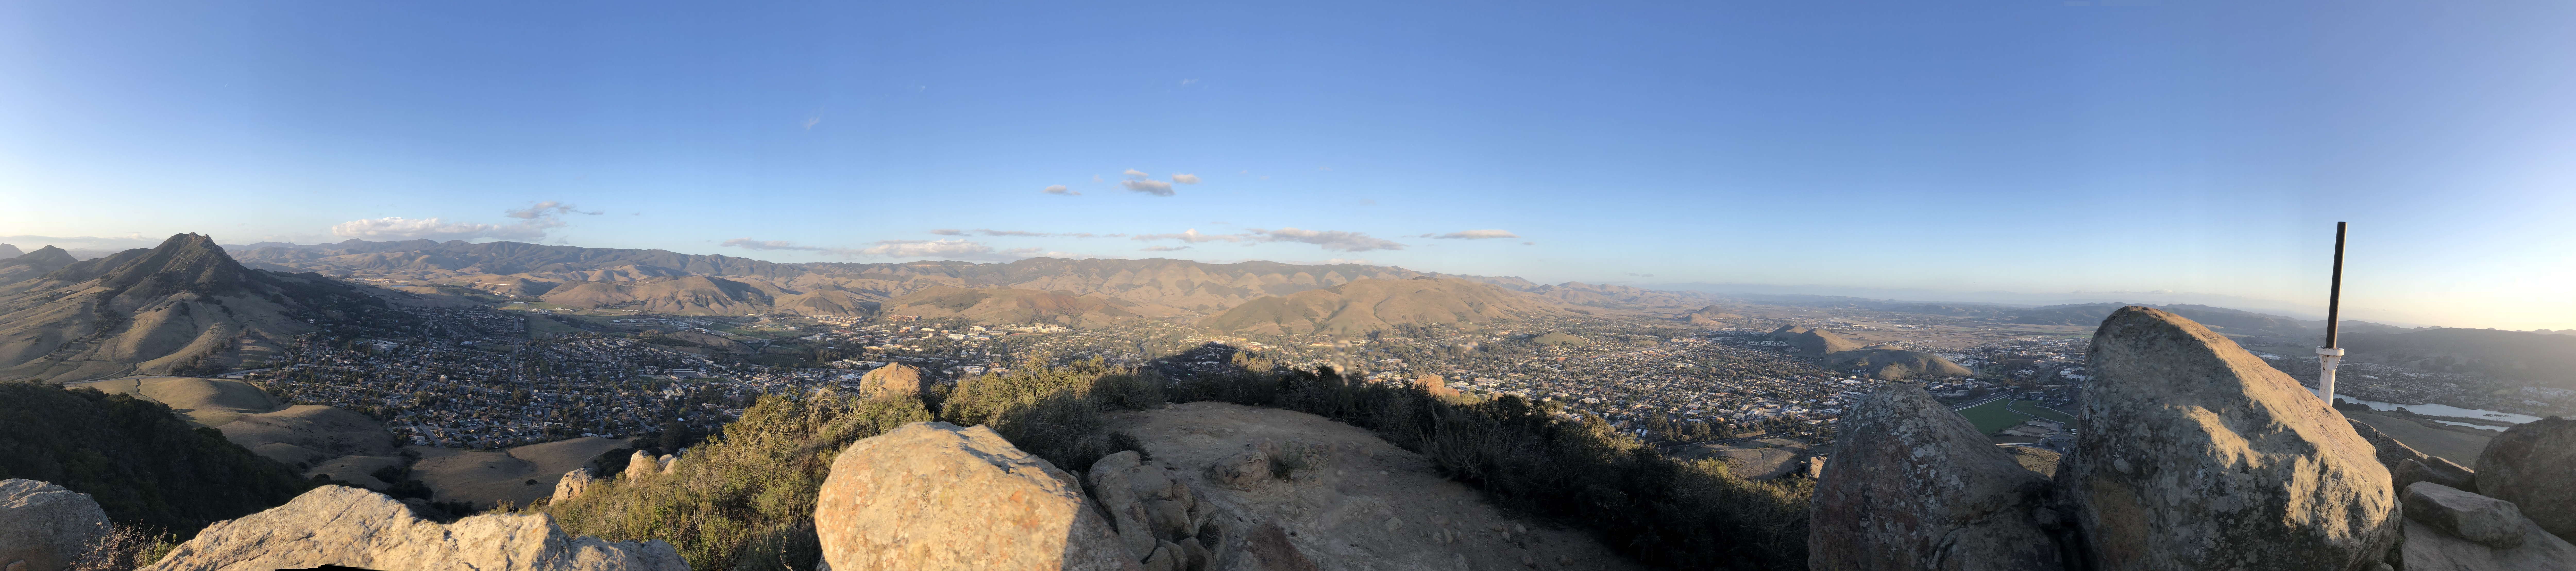 The view from the summit of Madonna Mountain